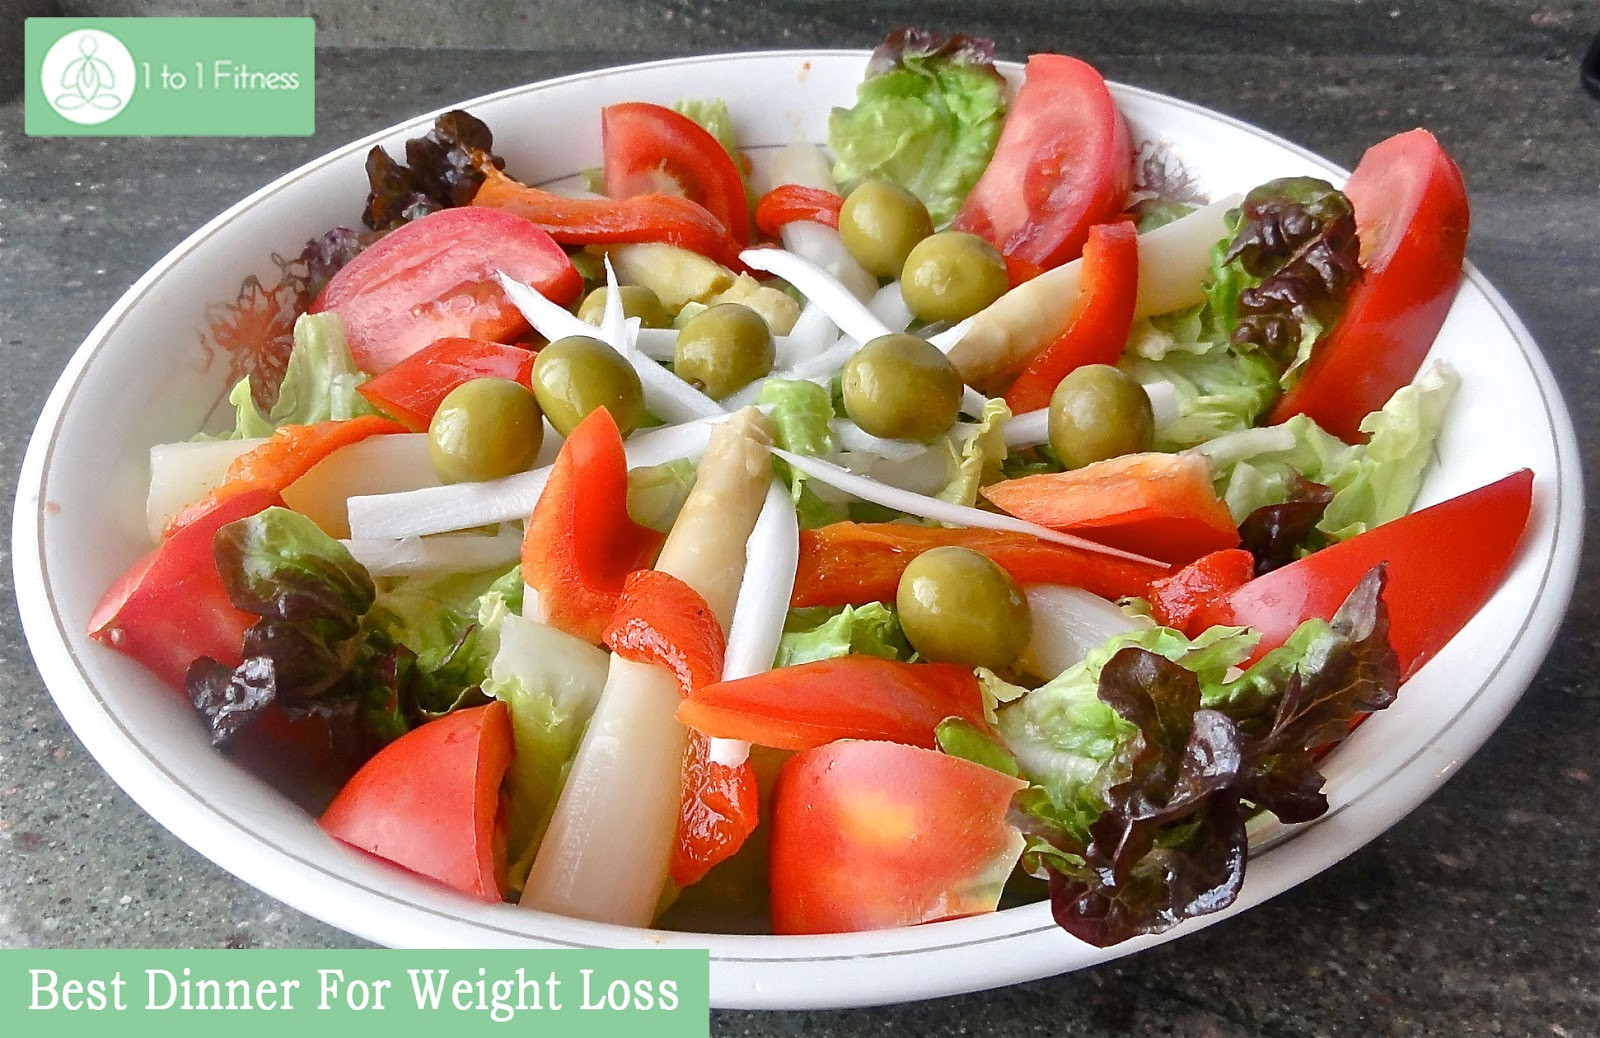 Salads Recipes Healthy  Which Is The Best Diet Plan For Weight Loss 1 to 1 Fitness